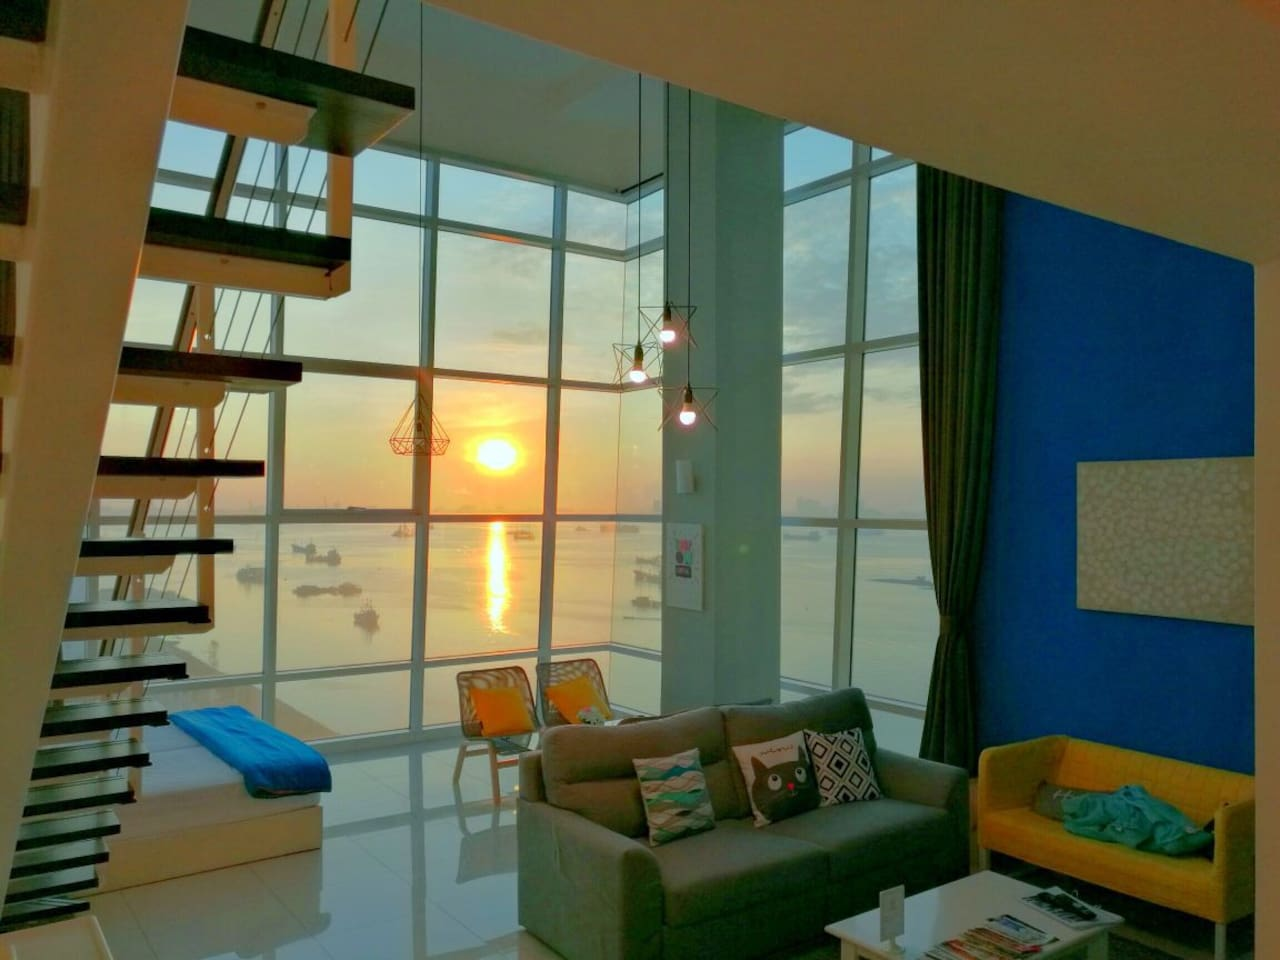 Amazing sunrise and full seaview from the house! Enjoy the nature seaview and the changing sky from our duplex super high 2 storey ceiling to floor glass windows.